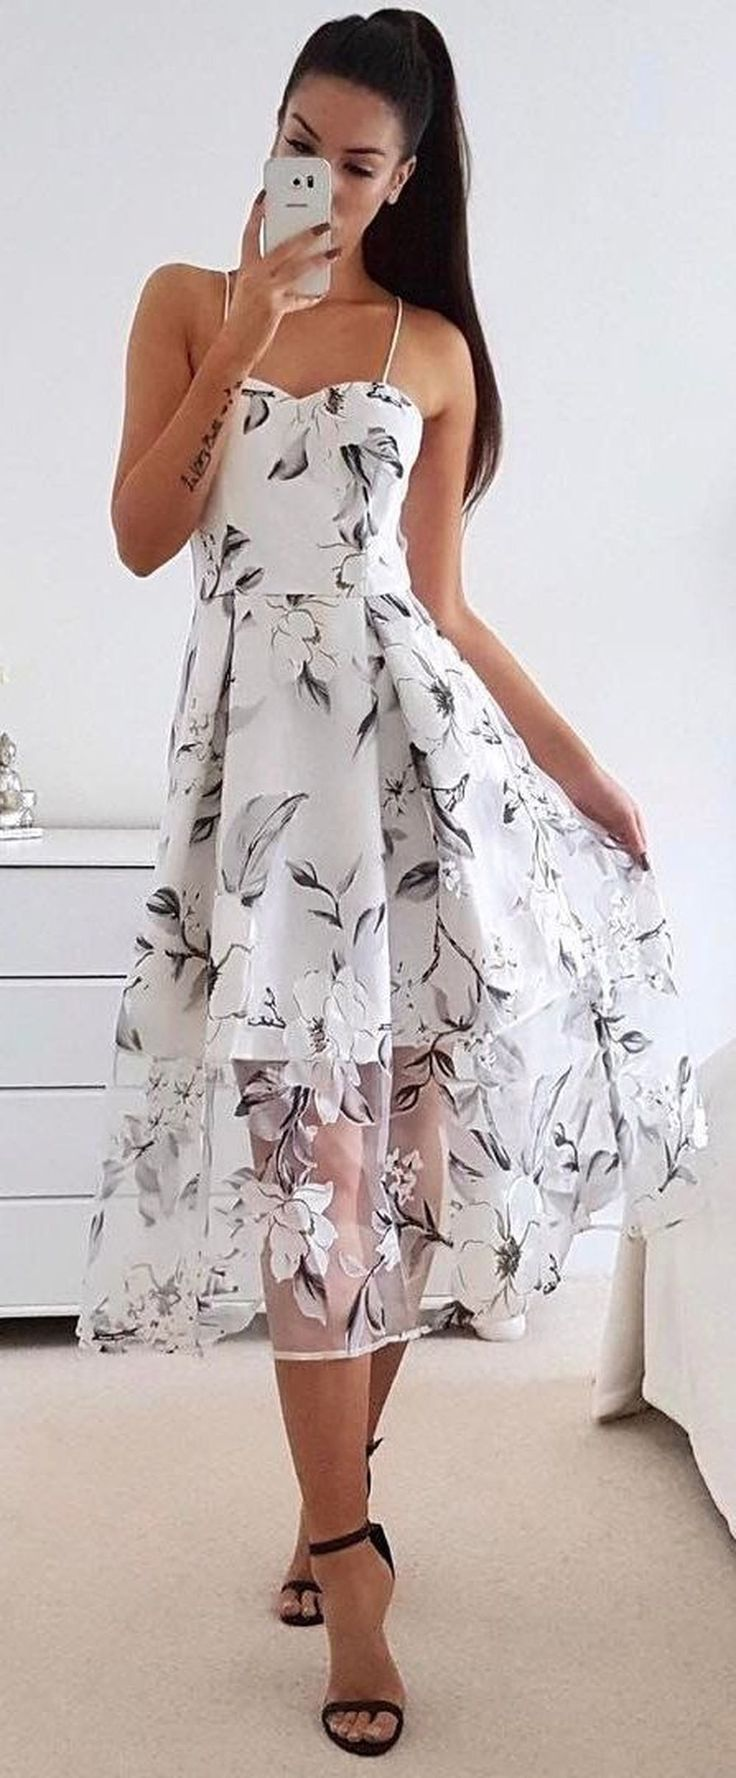 Gorgeous 50 Perfect Outfits For Summer Wedding Guests http://inspinre.com/2017/10/31/50-perfect-outfits-summer-wedding-guests/